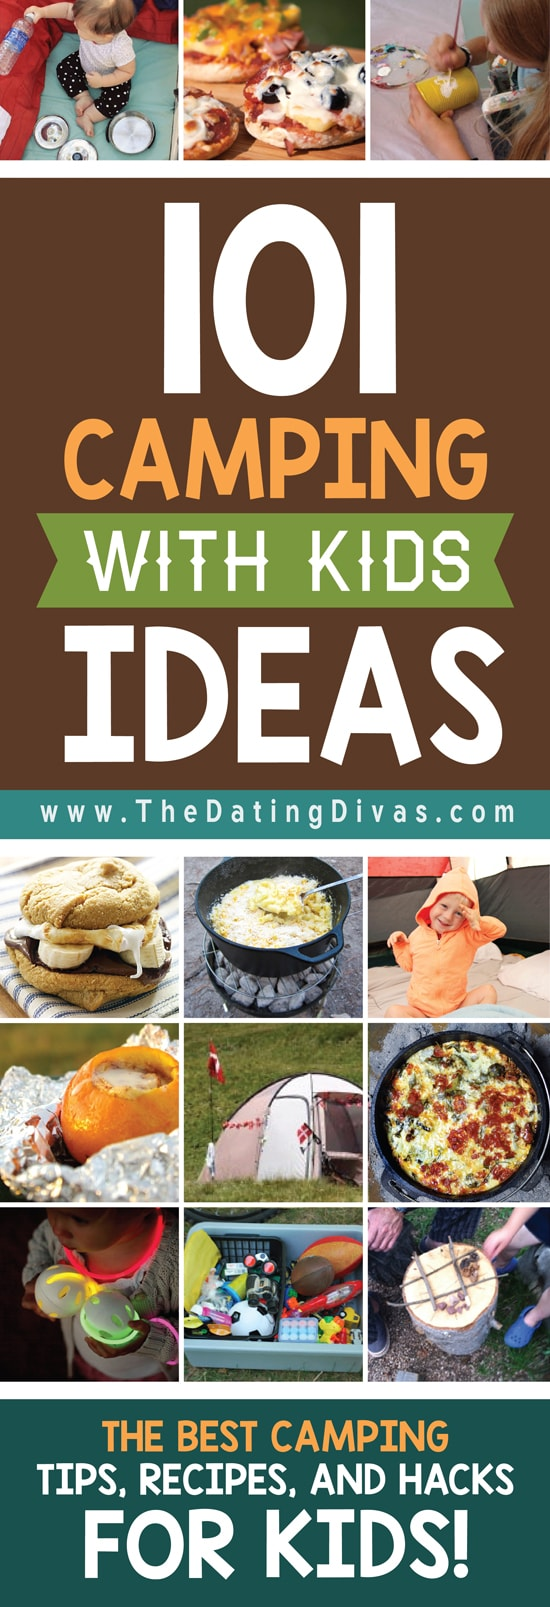 A HUGE list of ideas for camping with kids! There's camping games for kids, easy camping meals for family, and so much more! #TheDatingDivas #CampingWithKids #CampingActivities